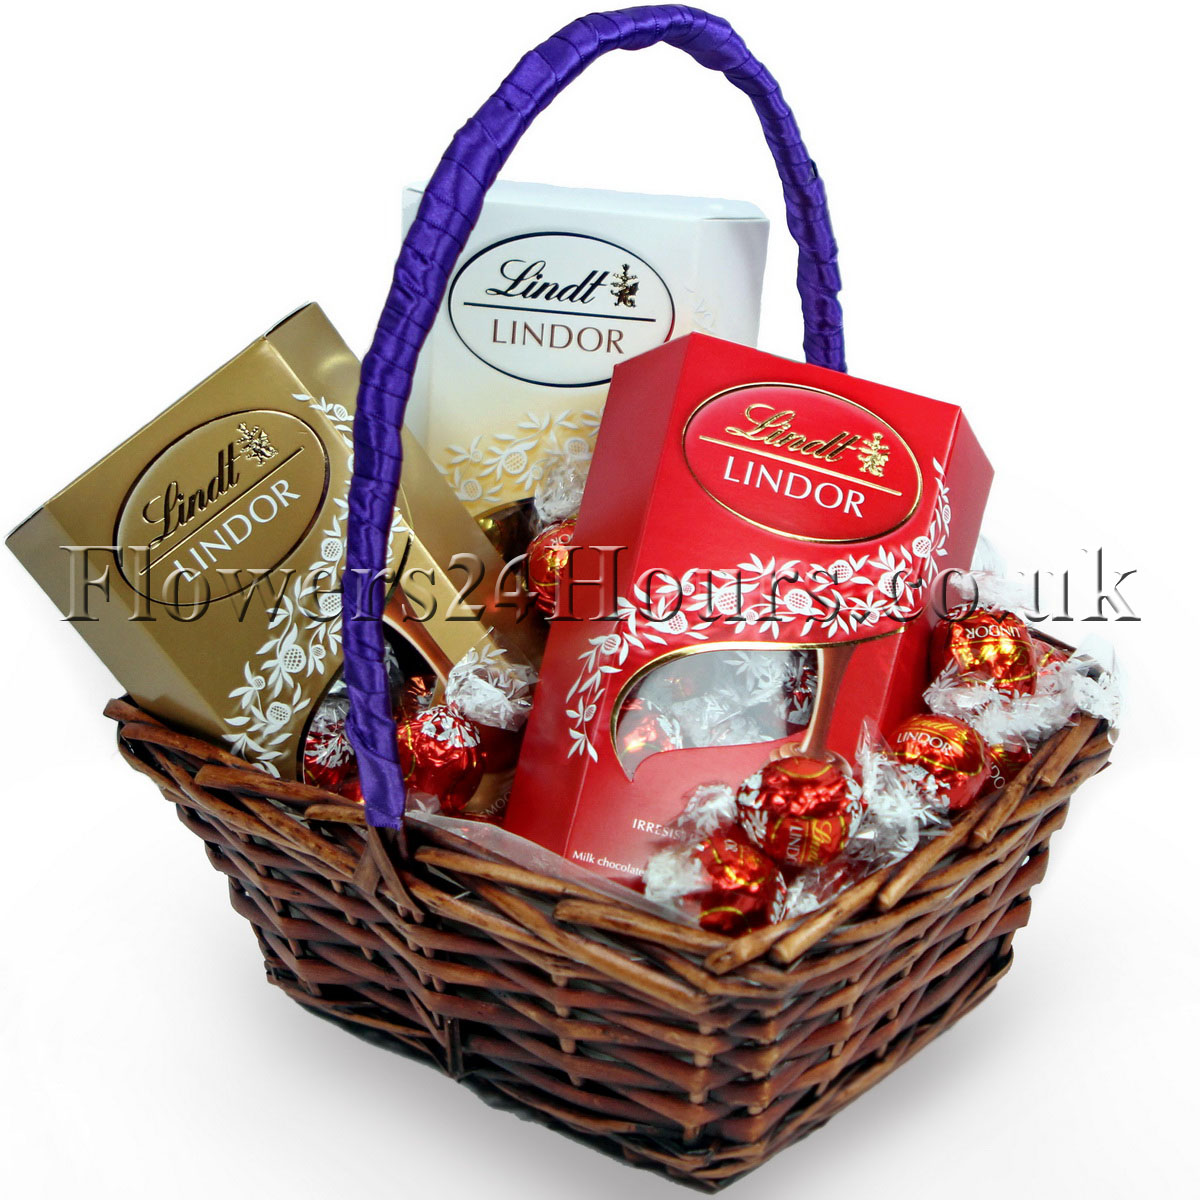 Chocolate Gift Baskets: Lindt Chocolate Gift Baskets Sydney